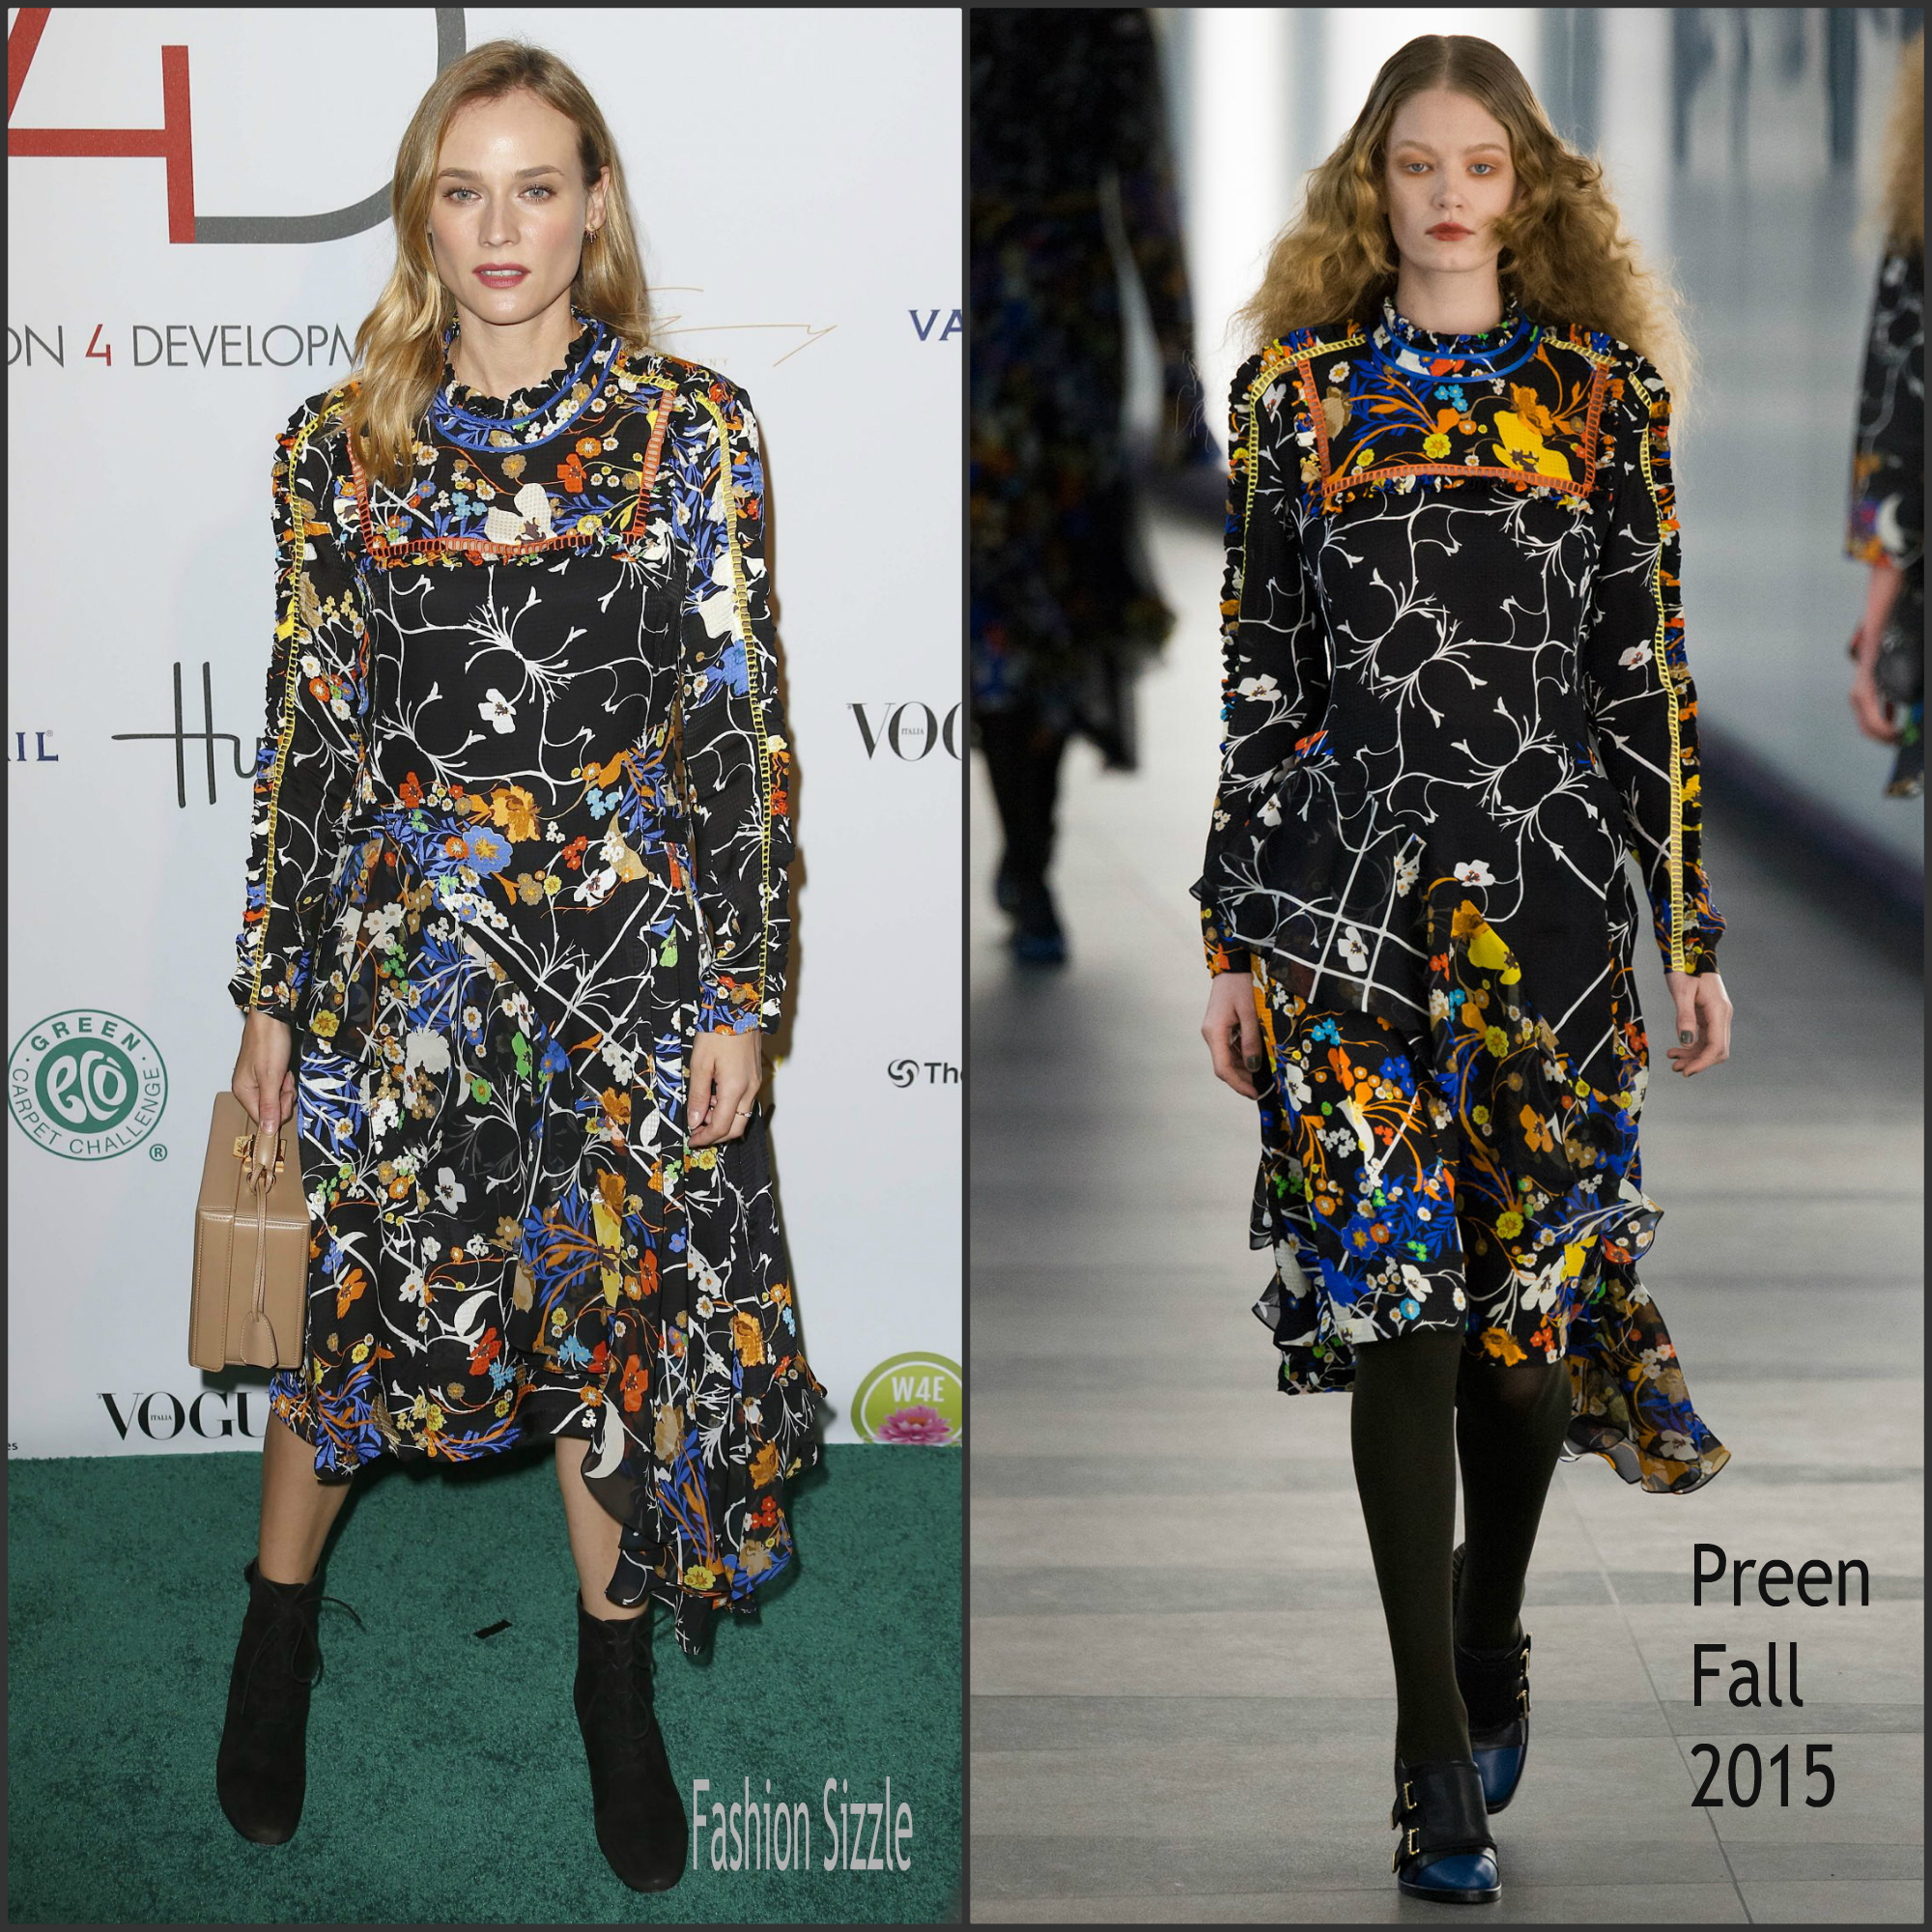 diane-kruger-in-preen-fashion4-devel0pments-5th-annual-first-ladies-luncheon